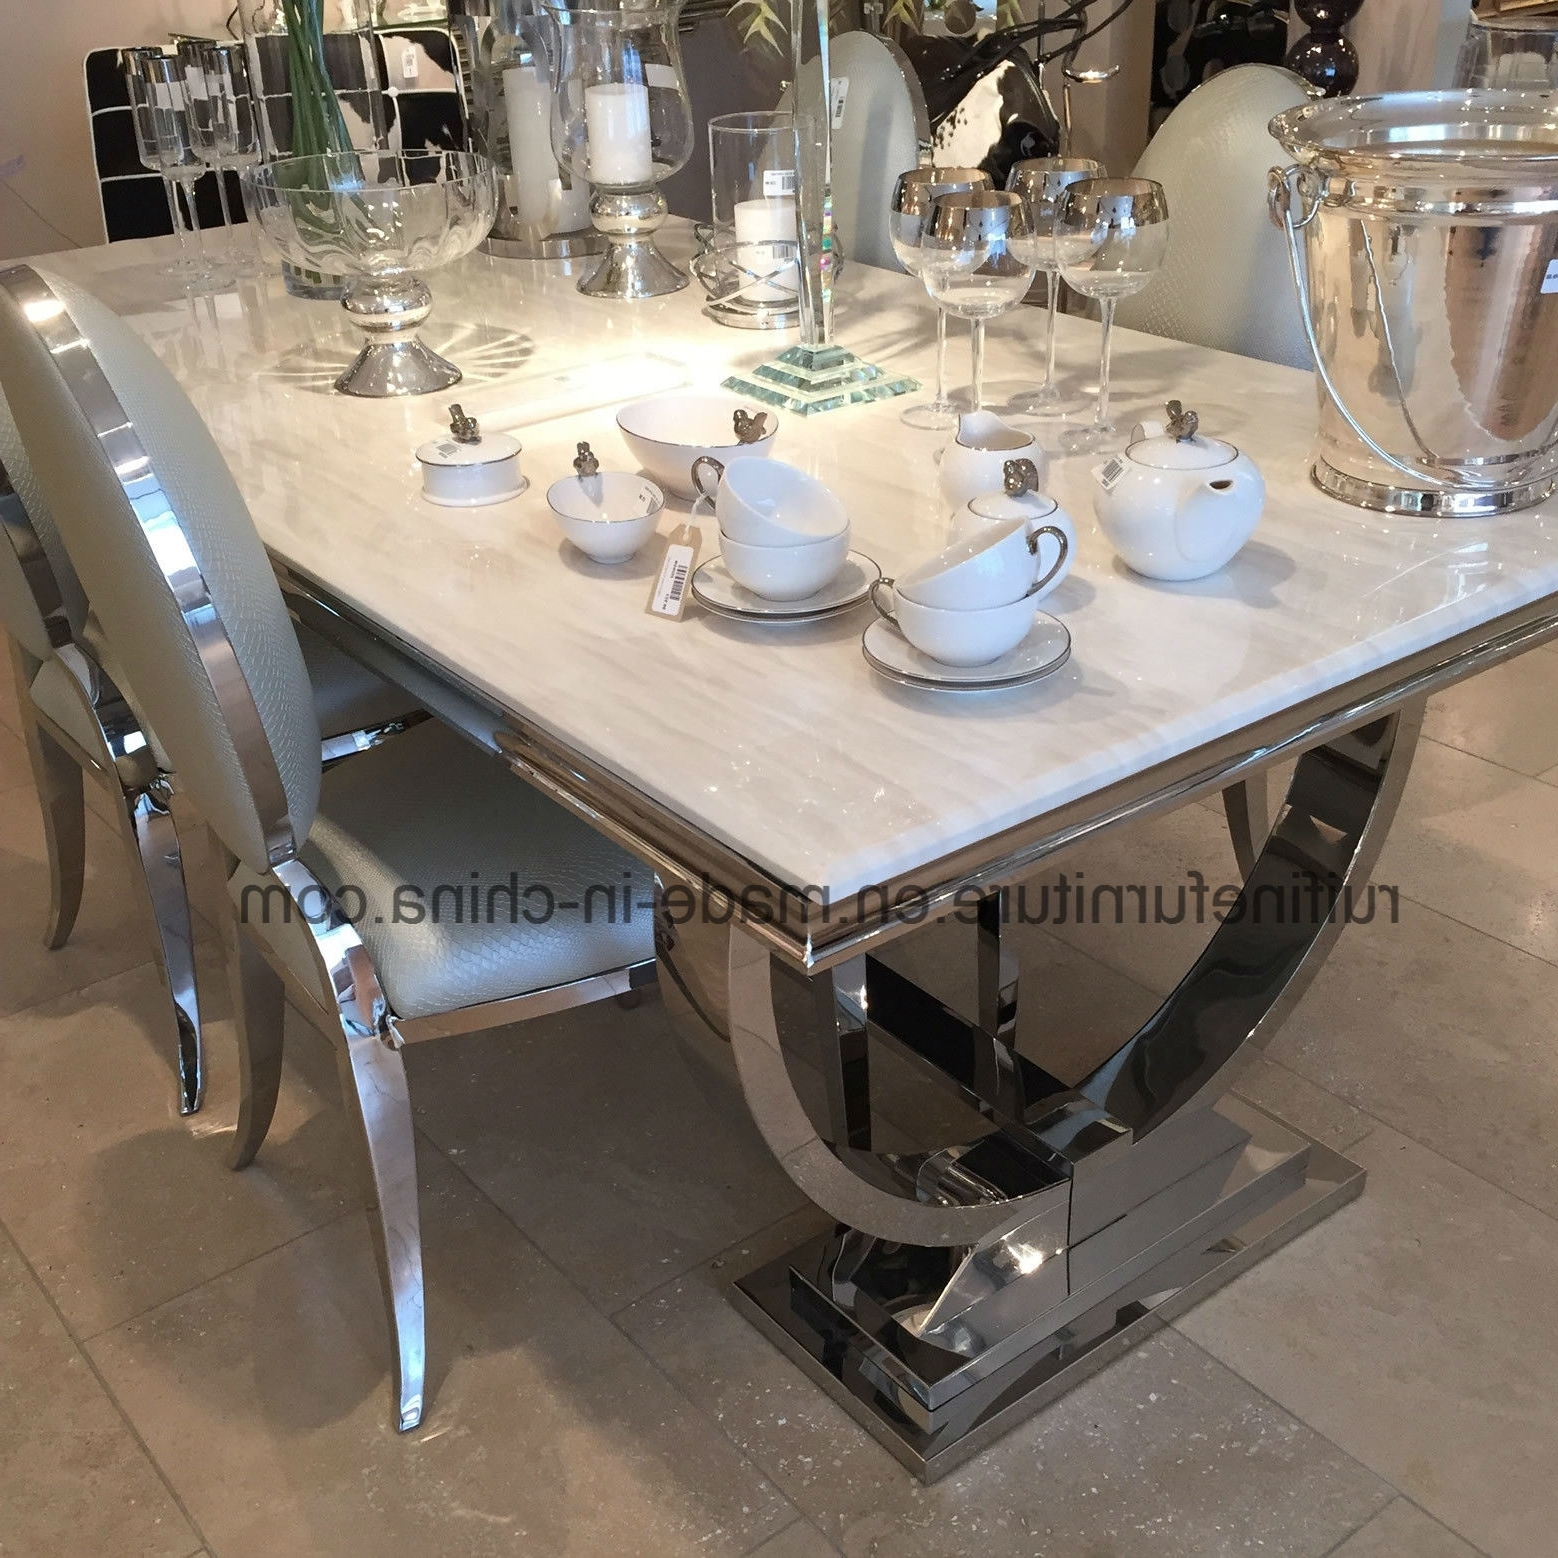 Preferred Solid Marble Dining Tables In China Modern Creative Solid Marble Dining Table Console Table (View 5 of 25)